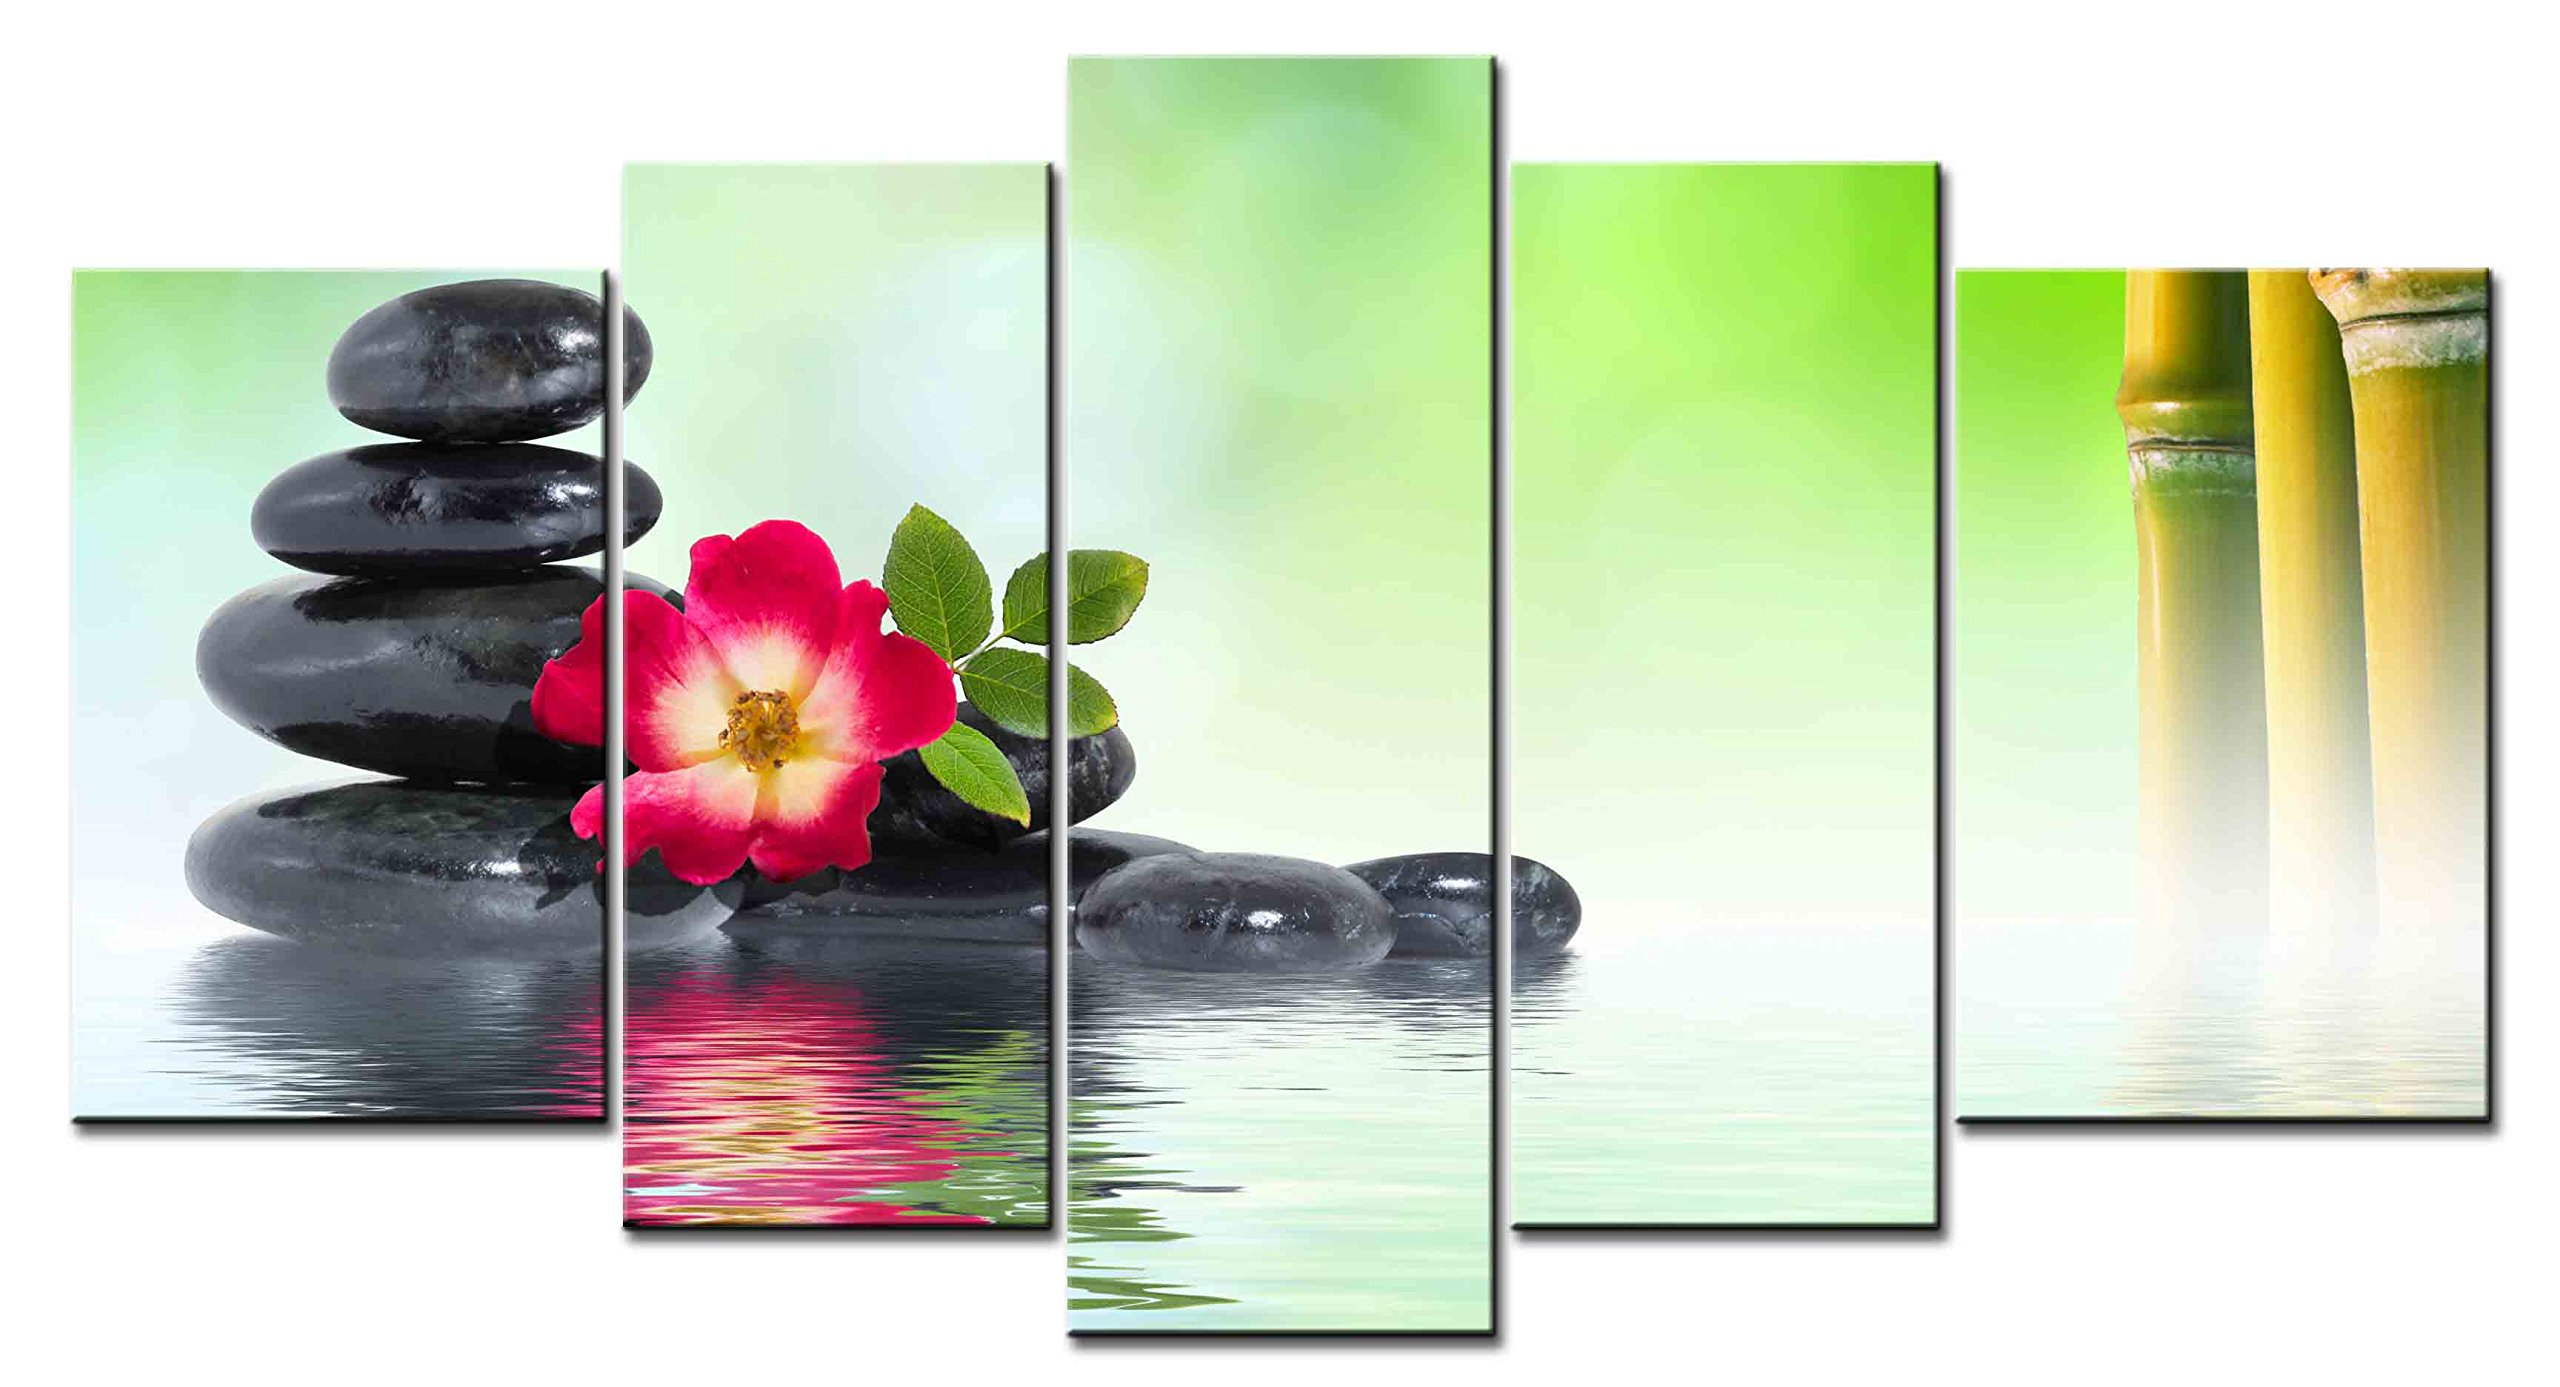 SmartWallArt - Spiritual Series 5 piece Wall Artwork Spa Stone Tower and Red Flower On The Water Near The Bamboo Pictures Modern Home Decor for Living Room Bedroom